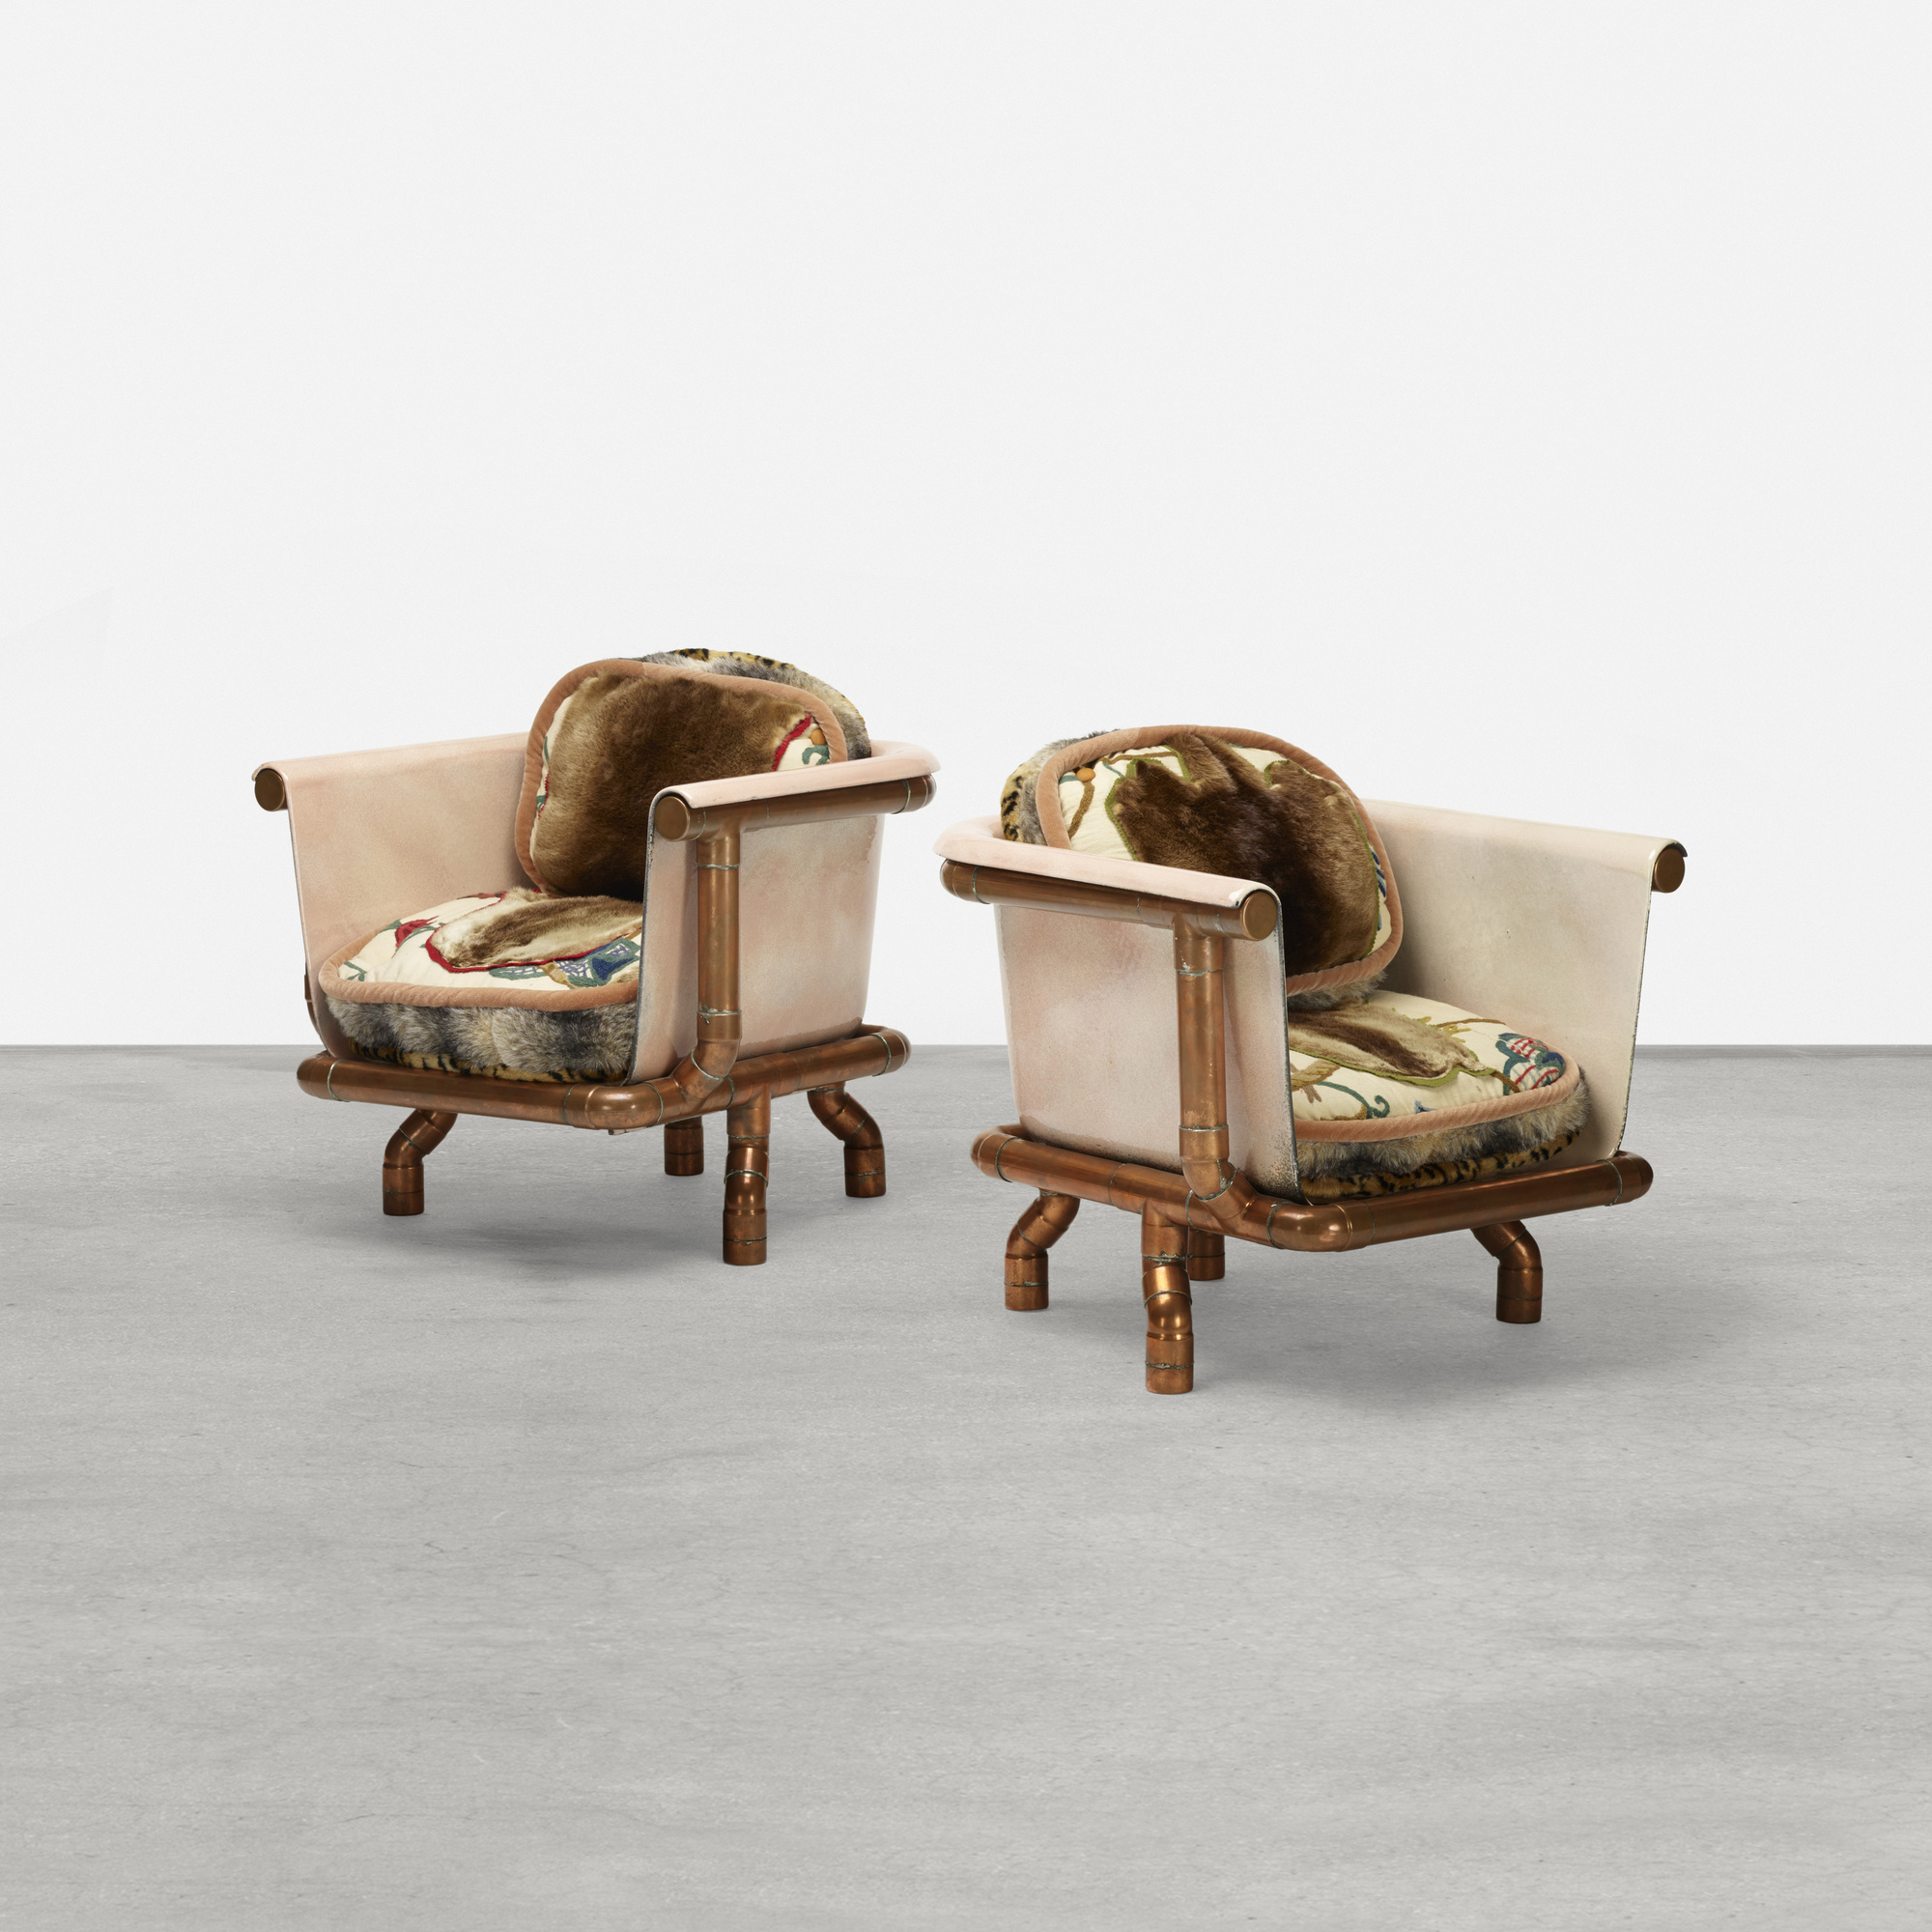 125: Joel Otterson / Endangered Species Chairs, pair (1 of 2)